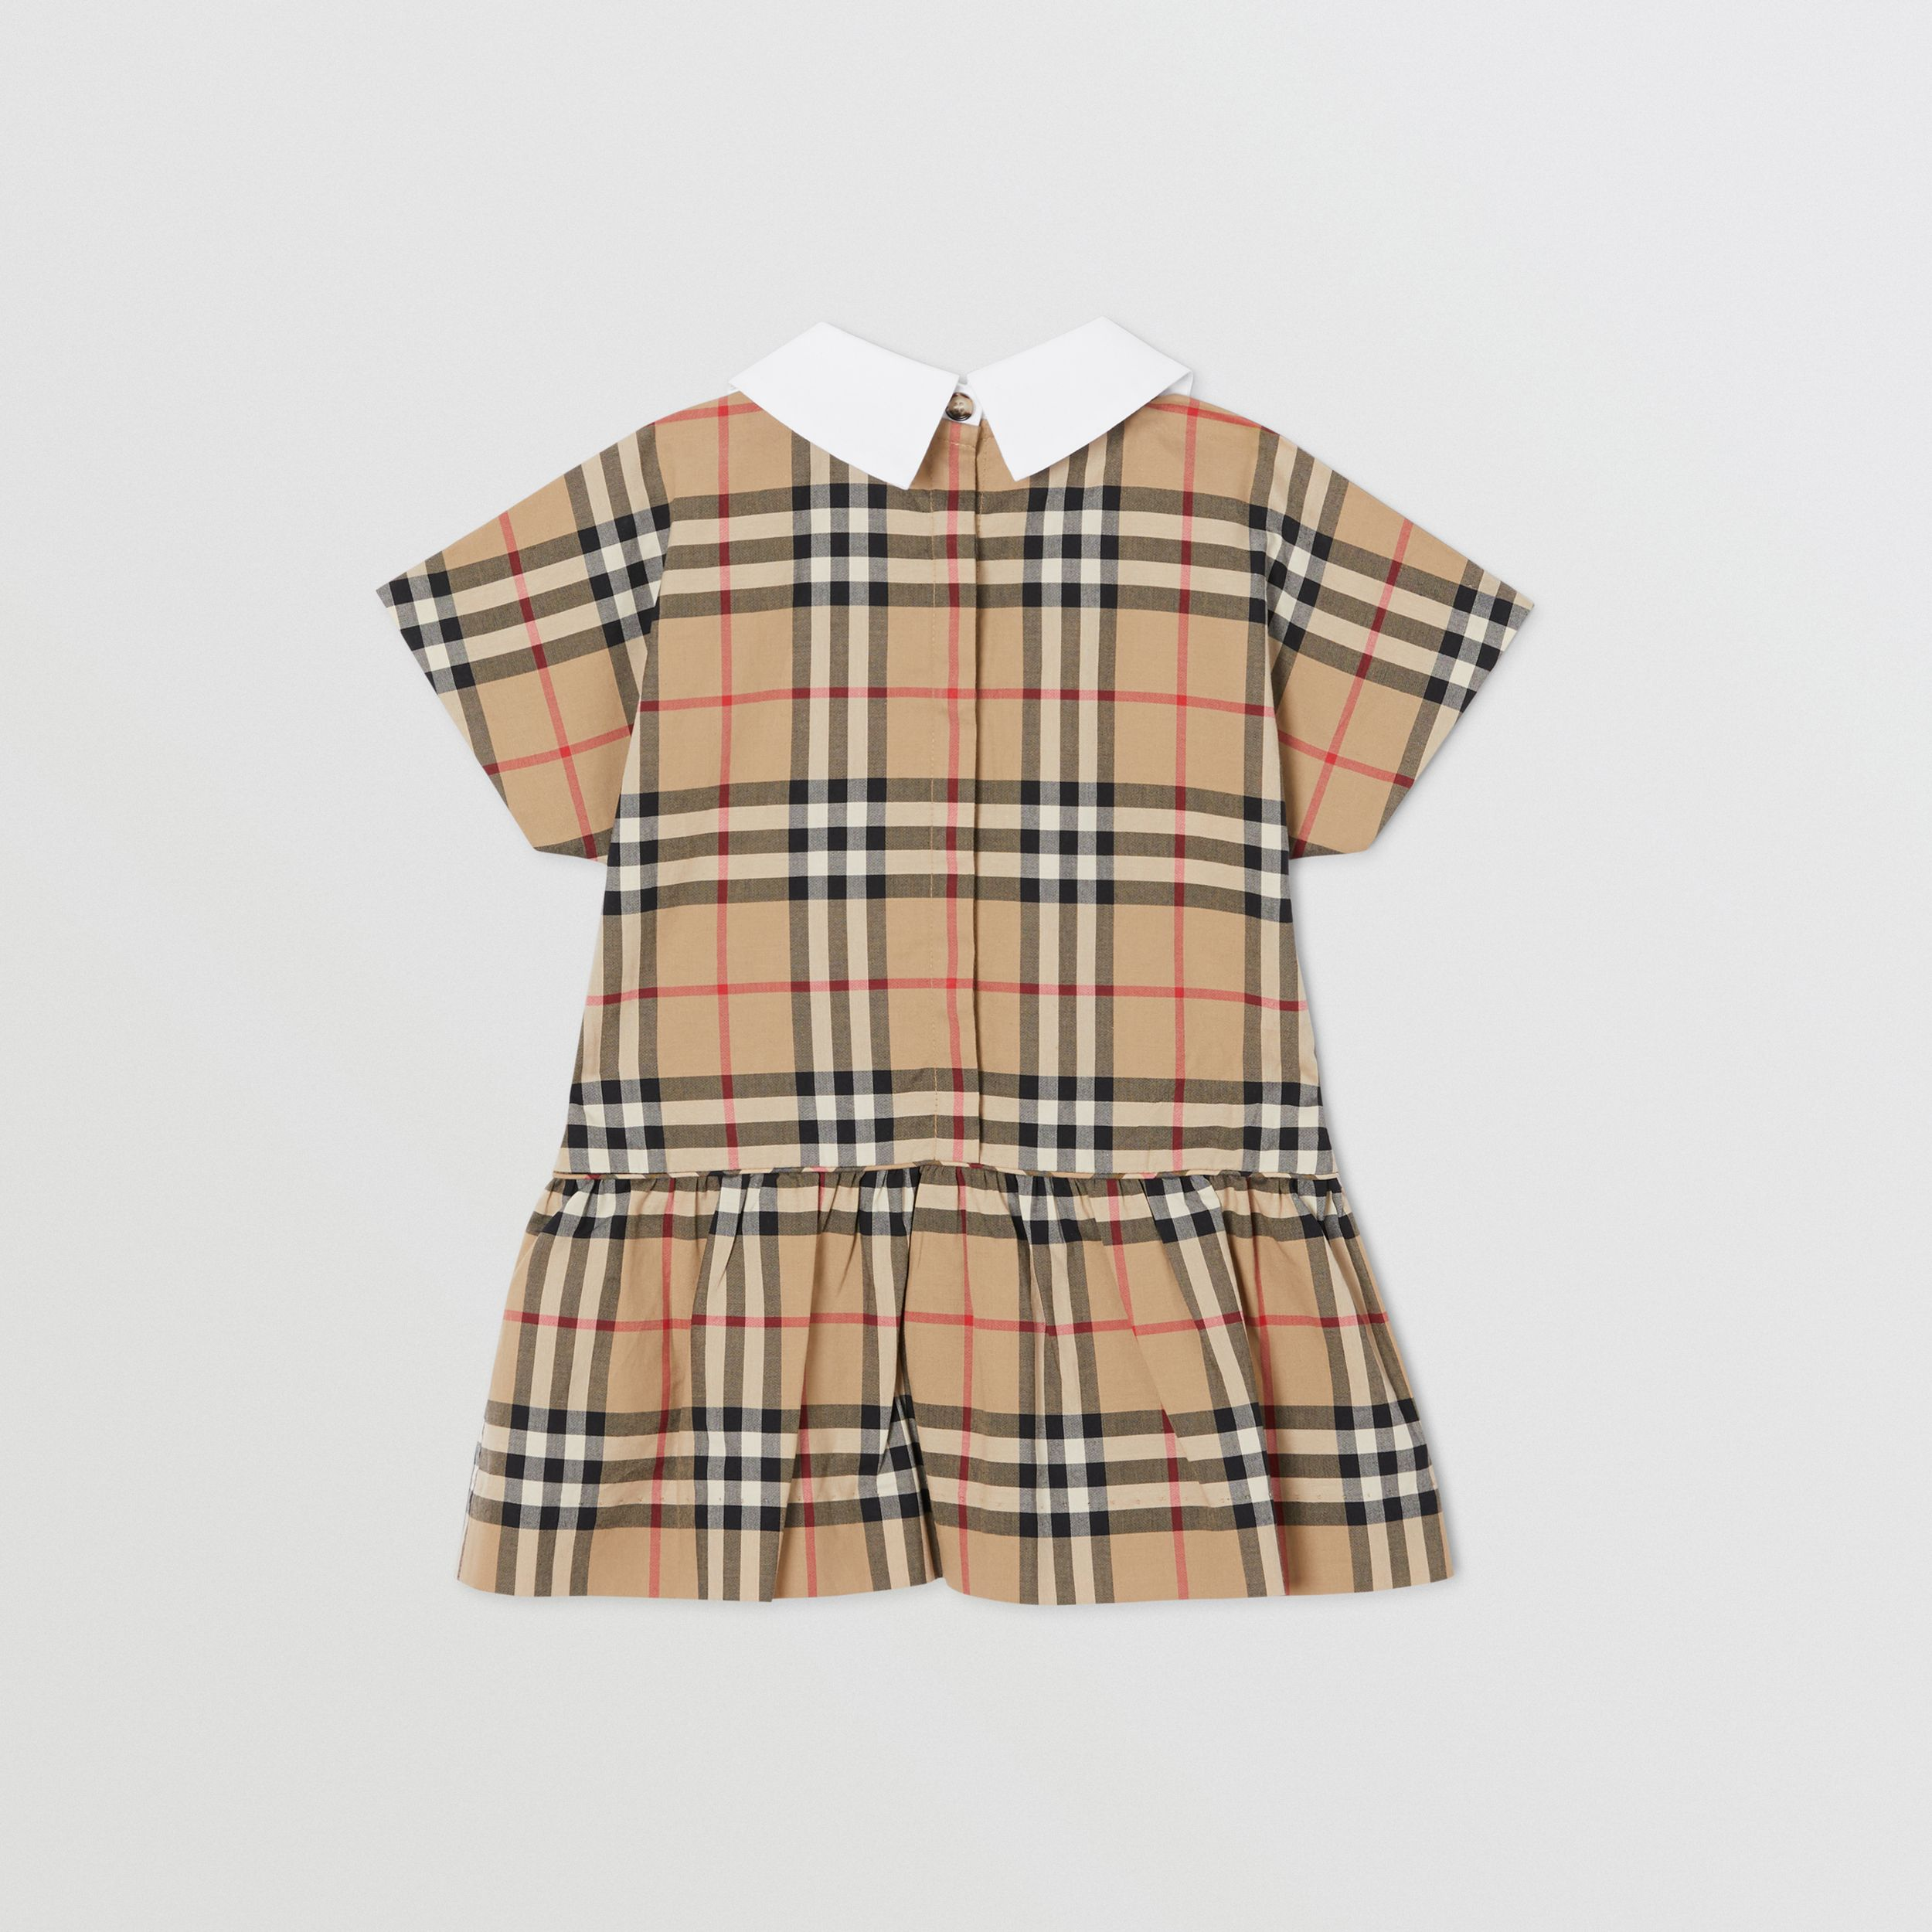 Contrast Collar Vintage Check Cotton Dress in Archive Beige - Children | Burberry United Kingdom - 4